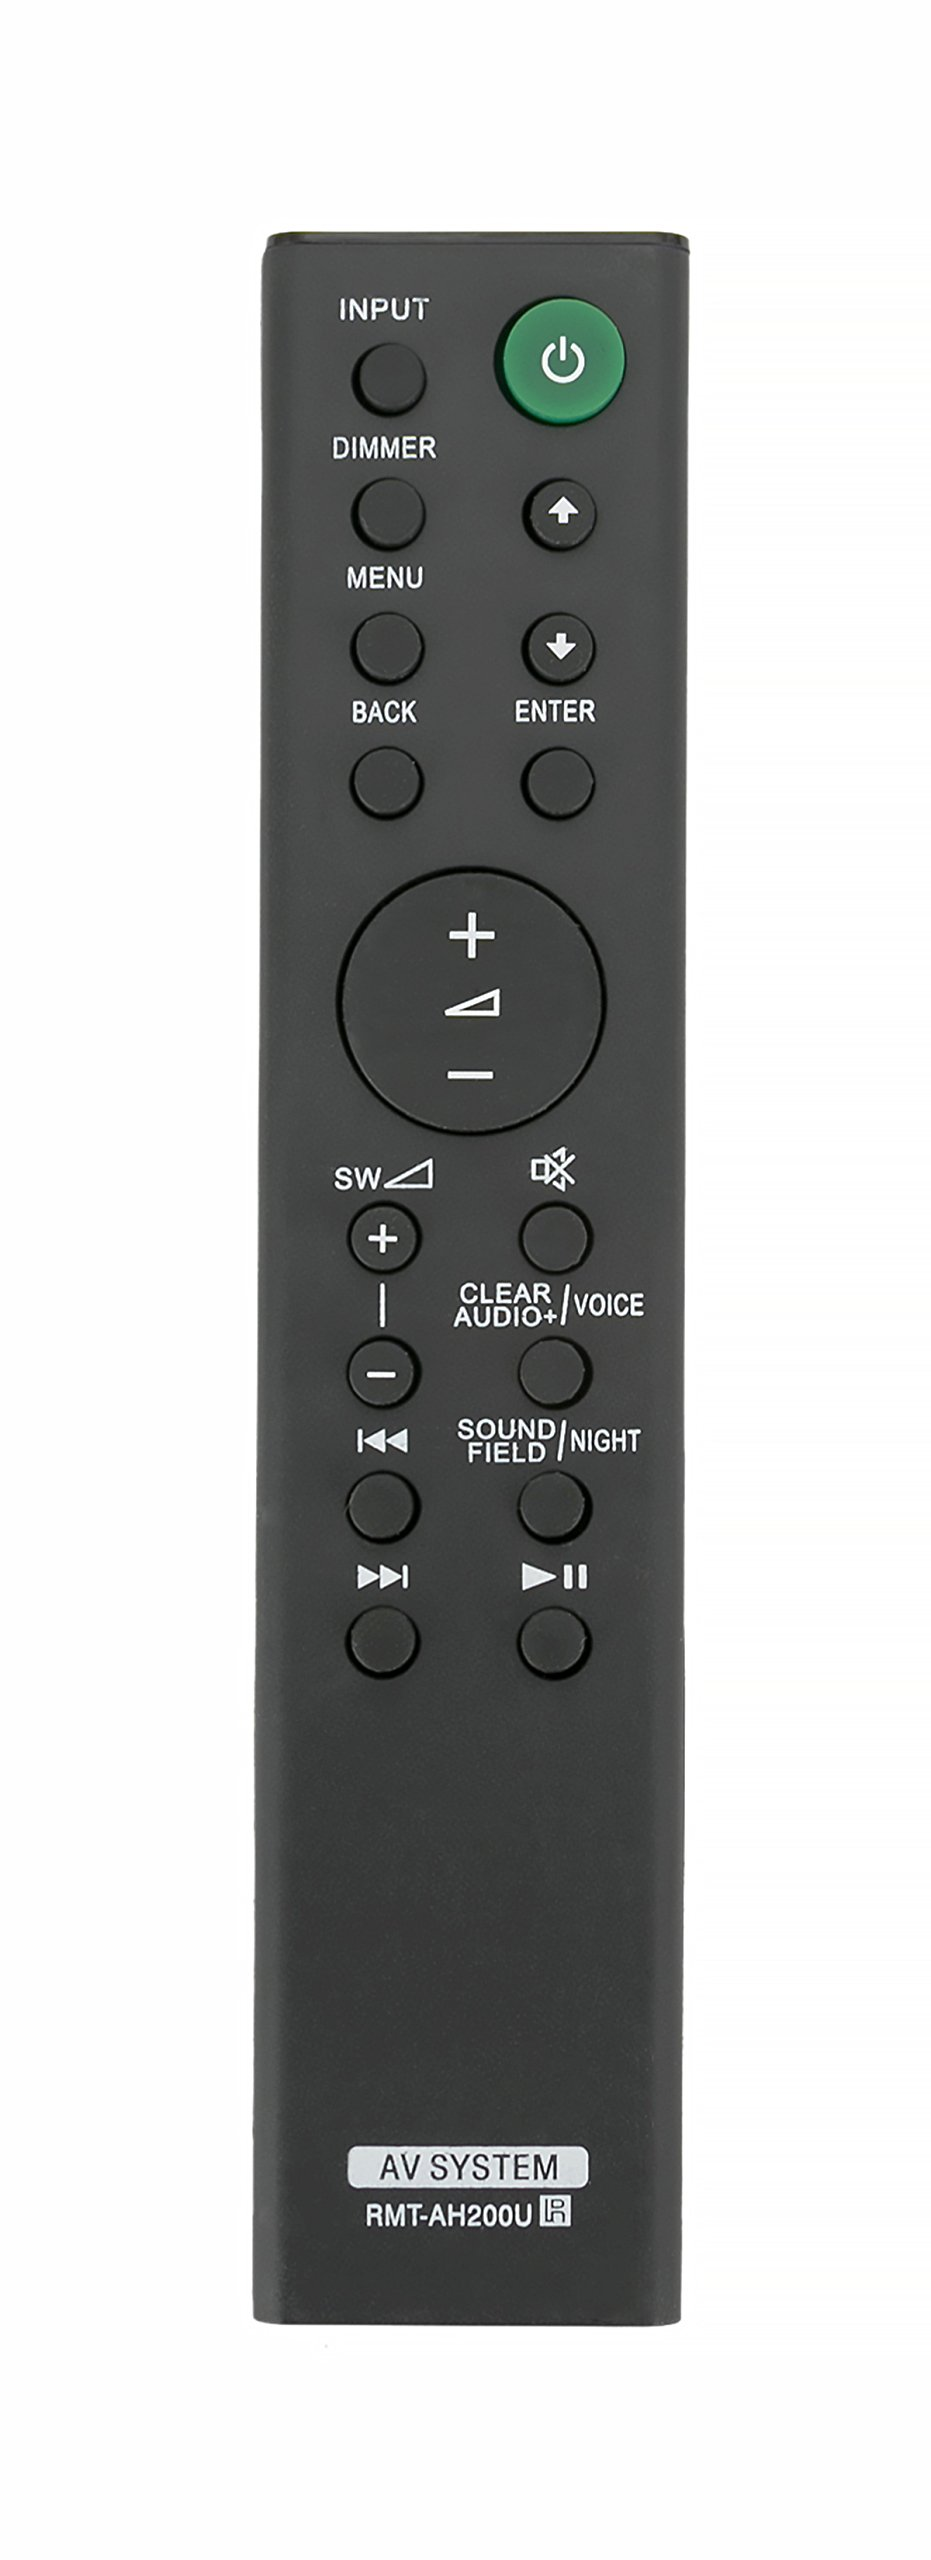 New RMT-AH200U Replace Remote fit for Sony Soundbar HT-CT390 SA-CT390 HT-RT3 Ht-rt40 HT-RT4 SA-WCT390 Home theater by Vinabty